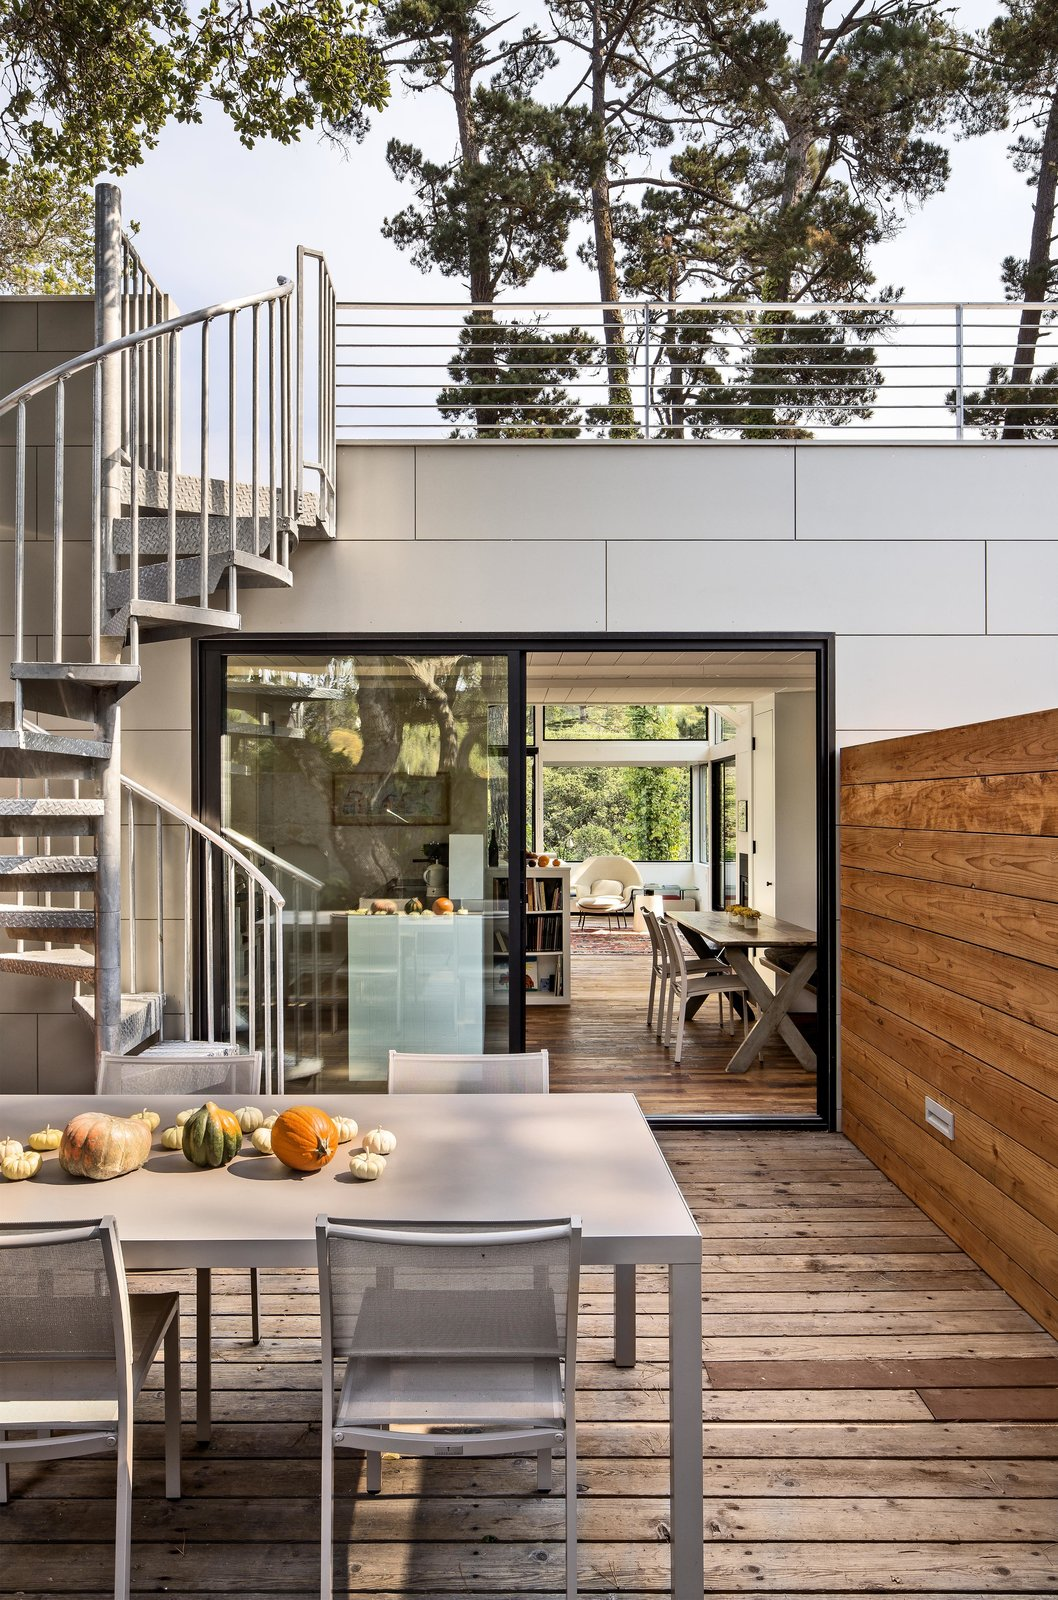 "The house is set on a forested hill, which means the backyard—though scenic—is too steep to enjoy. It's also perpetually shady. Schicketanz wanted somewhere she could soak in the sun, so she added a roof deck. ""It's really the only usable, large outdoor space I have,"" she says. Bright Renovation of a 1970s Big Sur Home - Photo 1 of 10"